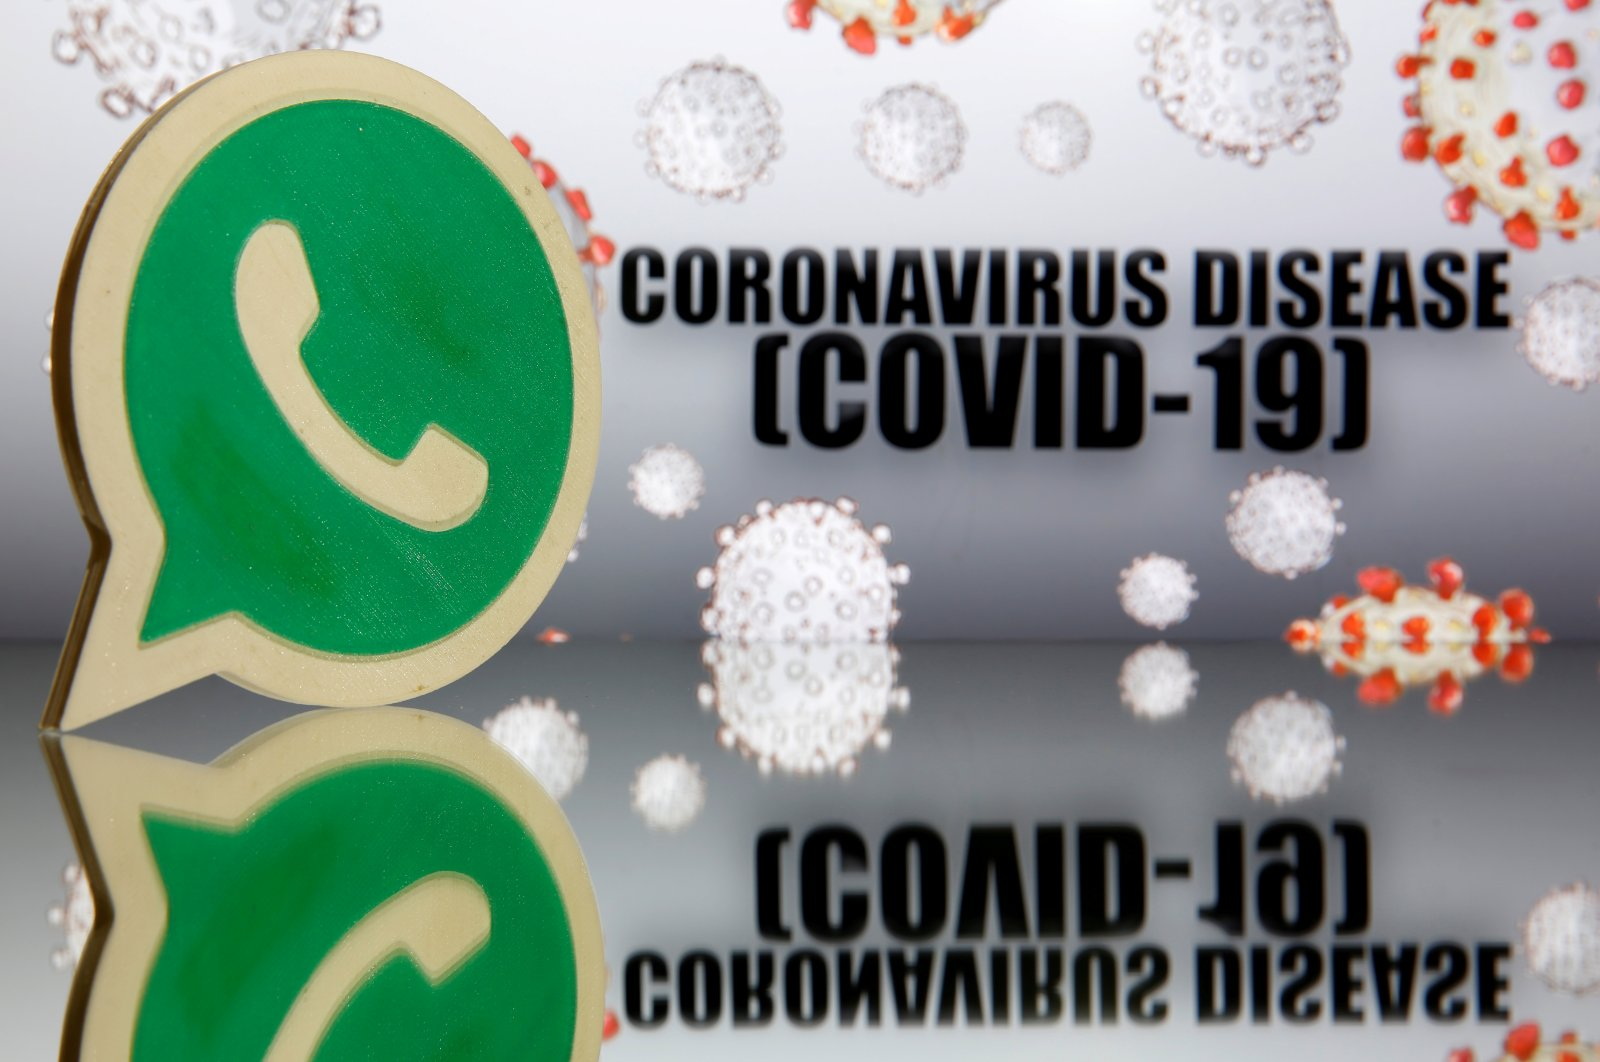 A 3D-printed Whatsapp logo embellishes a coronavirus disease (COVID-19) sign in this illustration from March 19, 2020. (Reuters Photo)